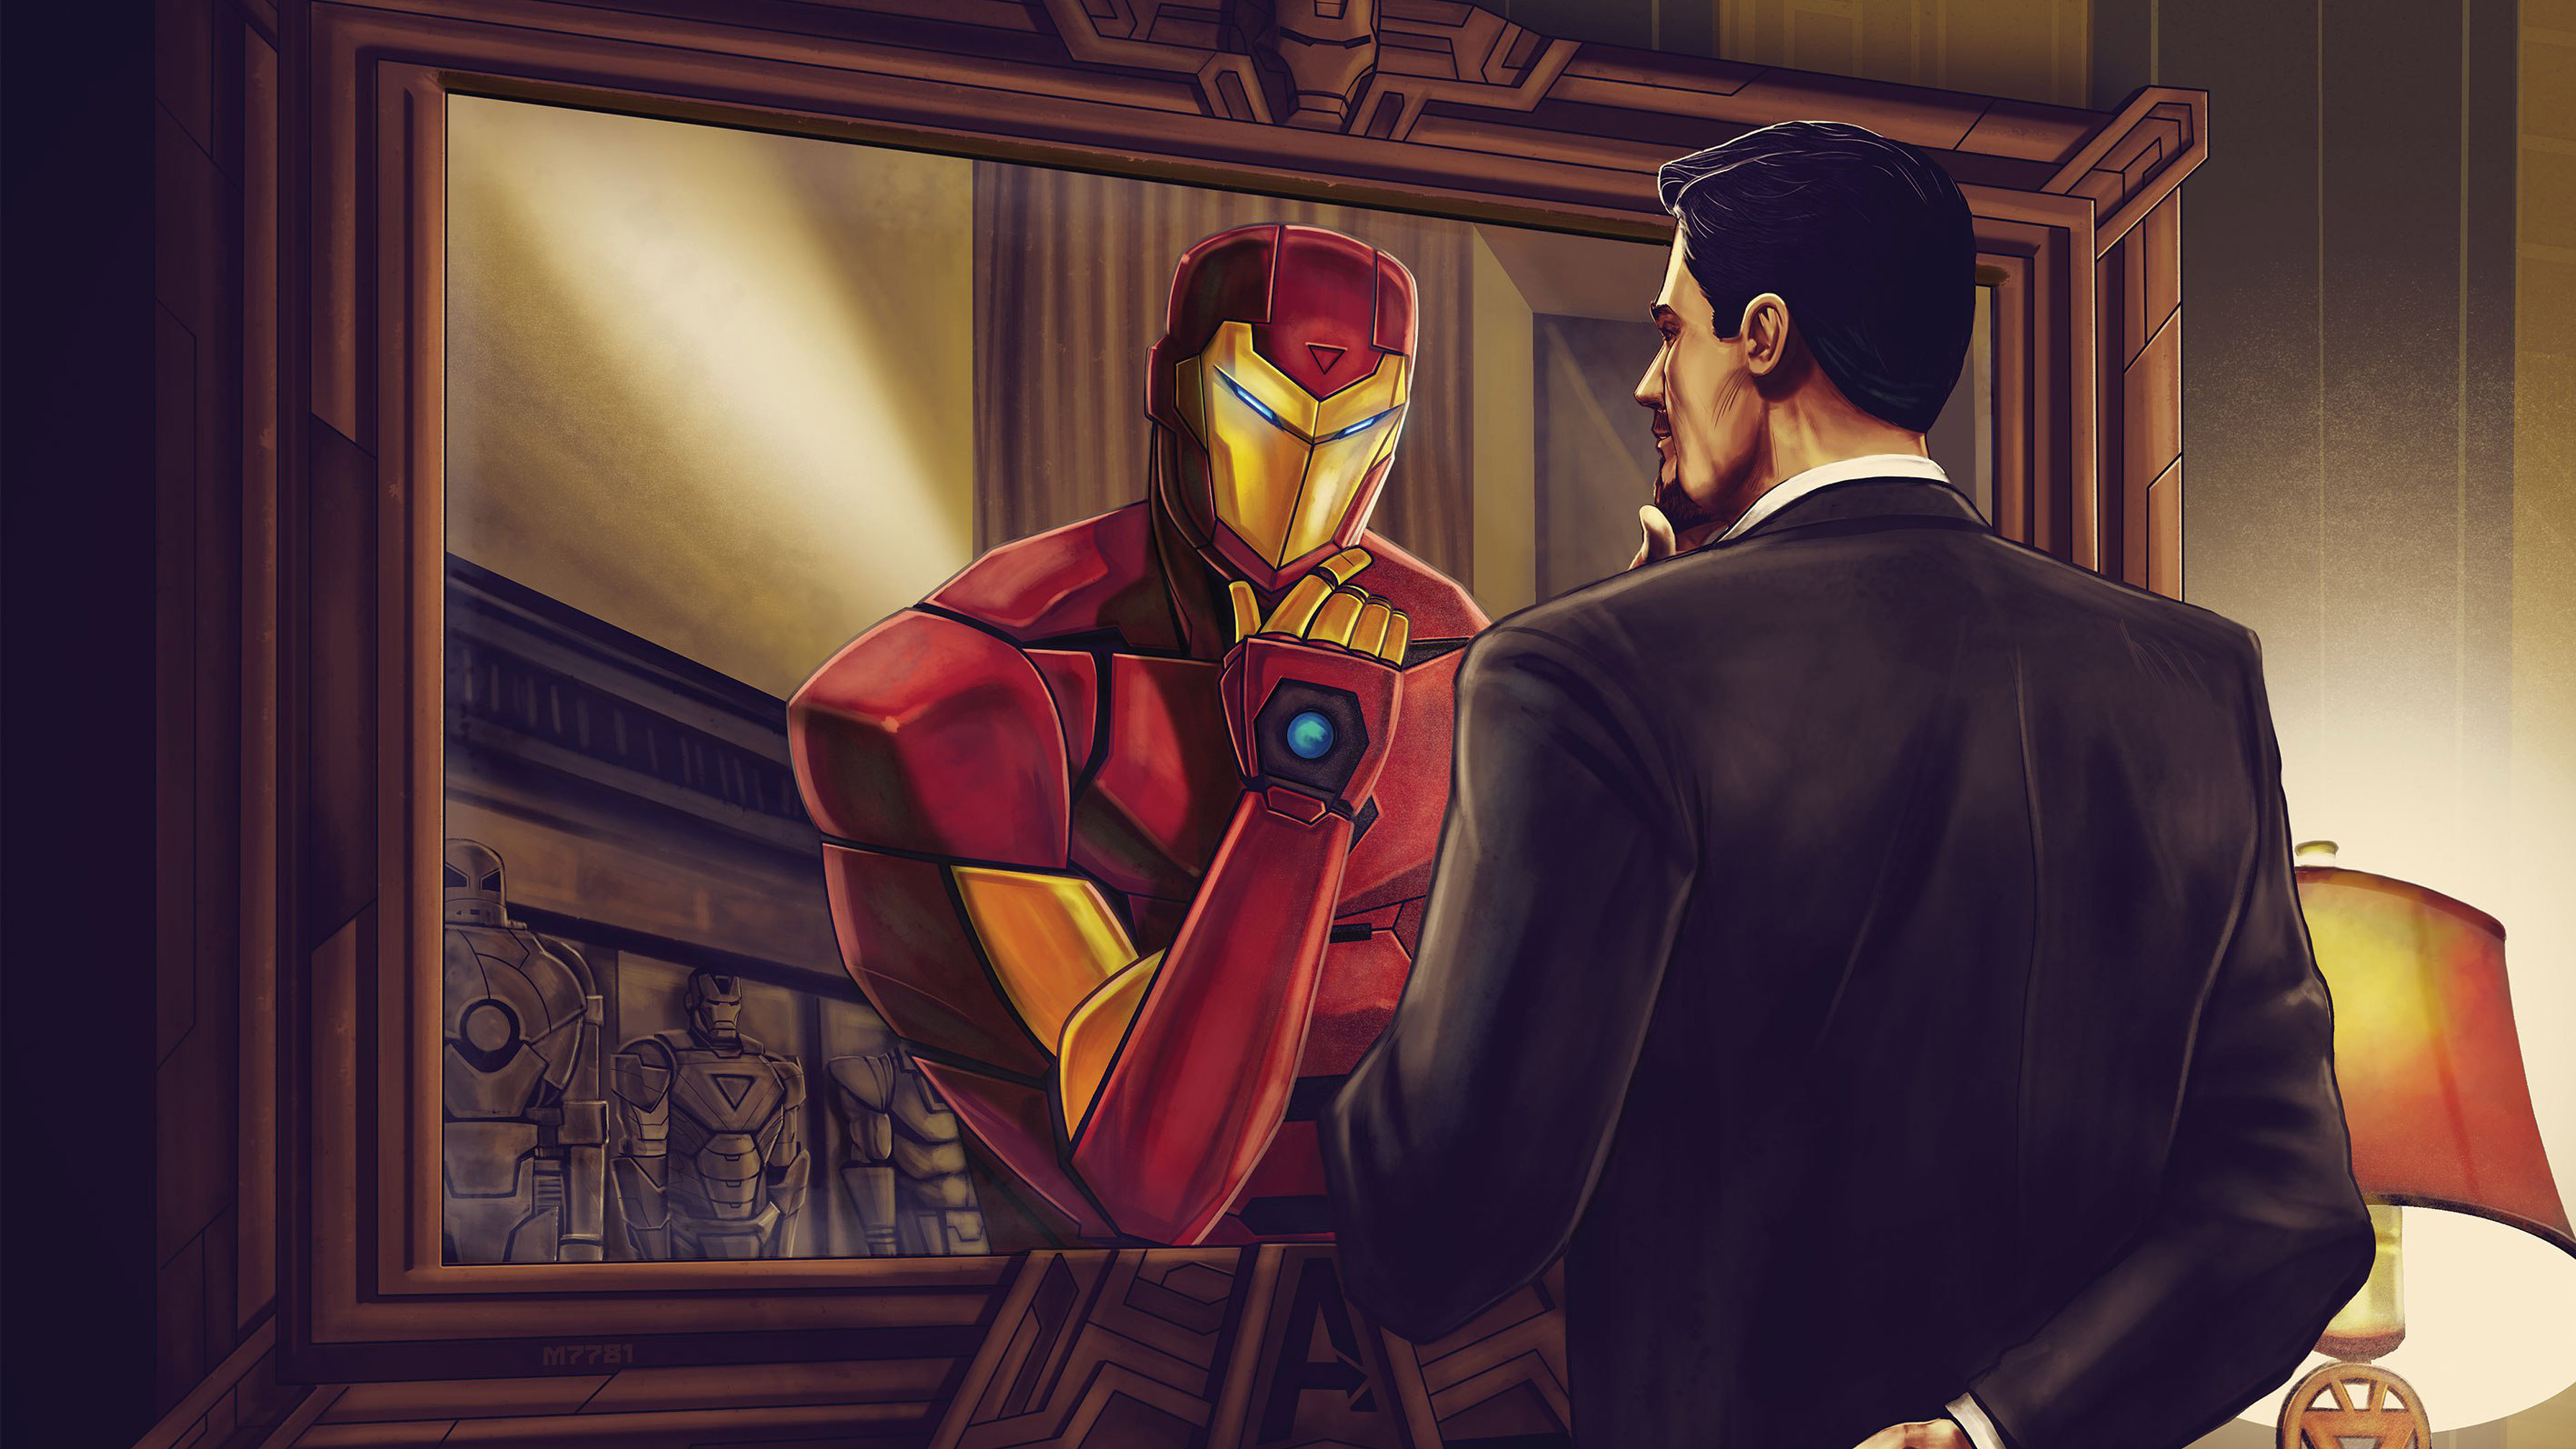 international iron man 1536507763 - International Iron Man - superheroes wallpapers, movies wallpapers, iron man wallpapers, hd-wallpapers, digital art wallpapers, artwork wallpapers, artist wallpapers, 4k-wallpapers